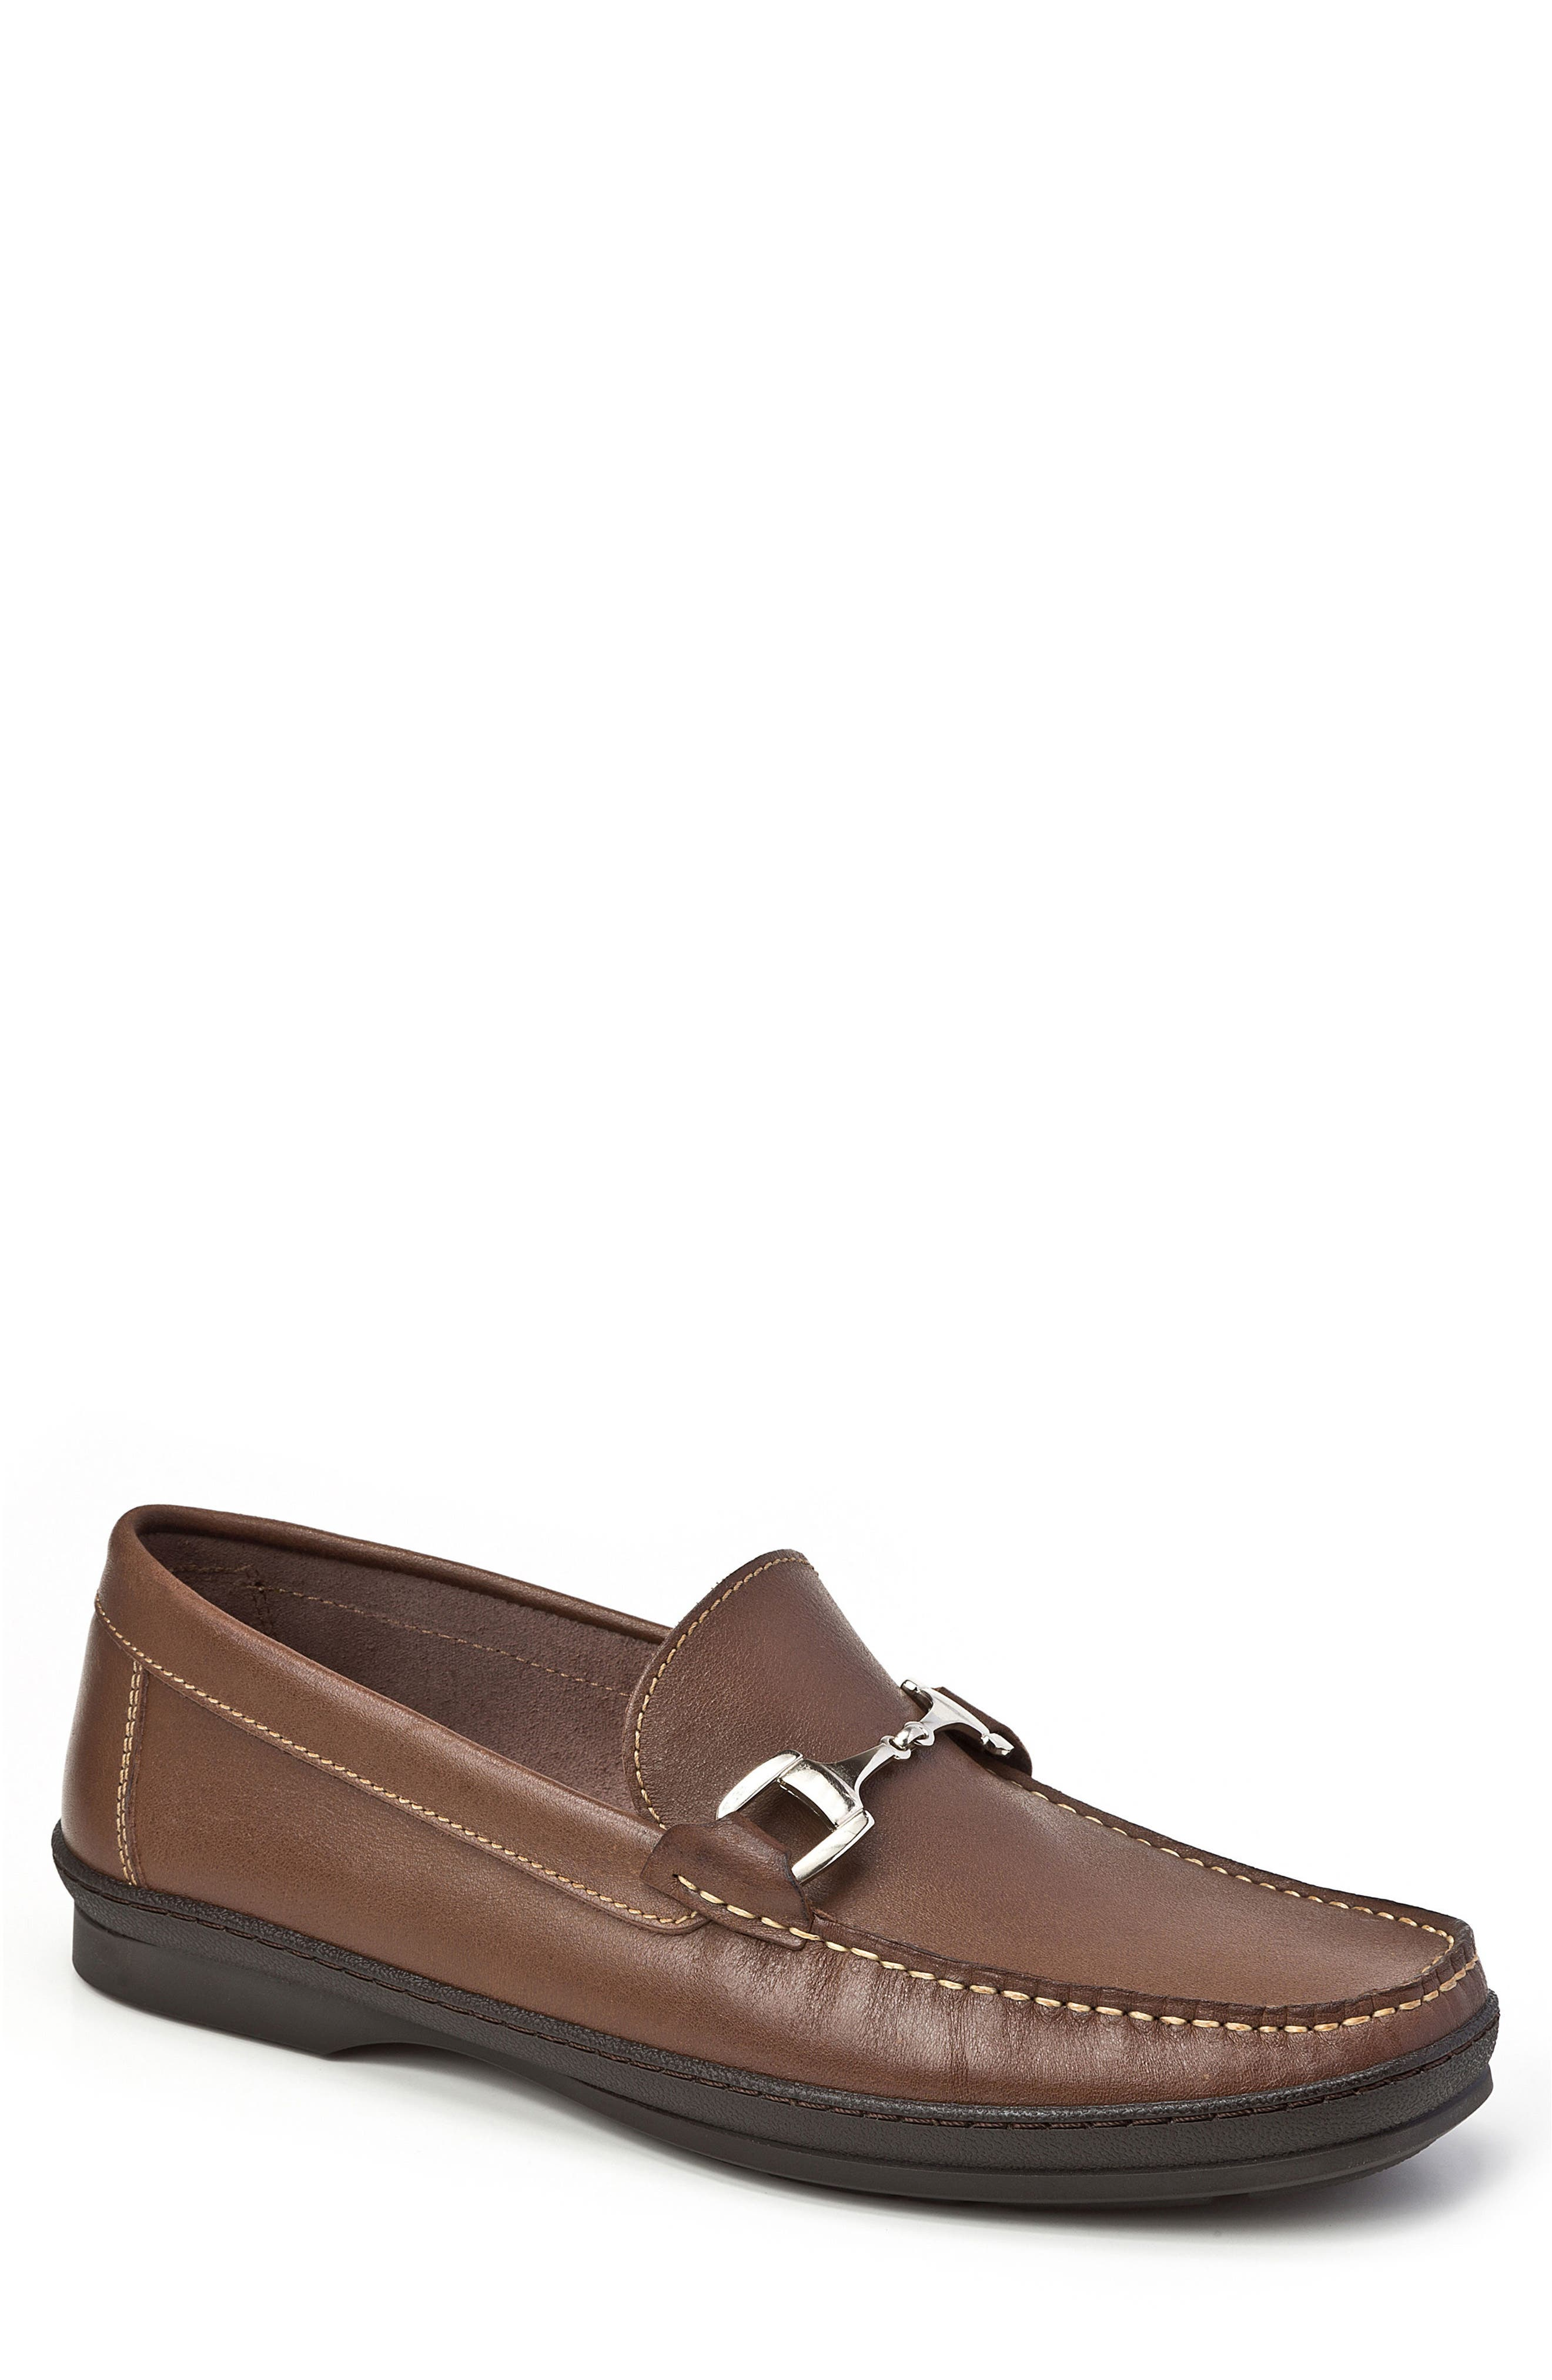 Navarro Bit Loafer,                         Main,                         color, Brown Leather